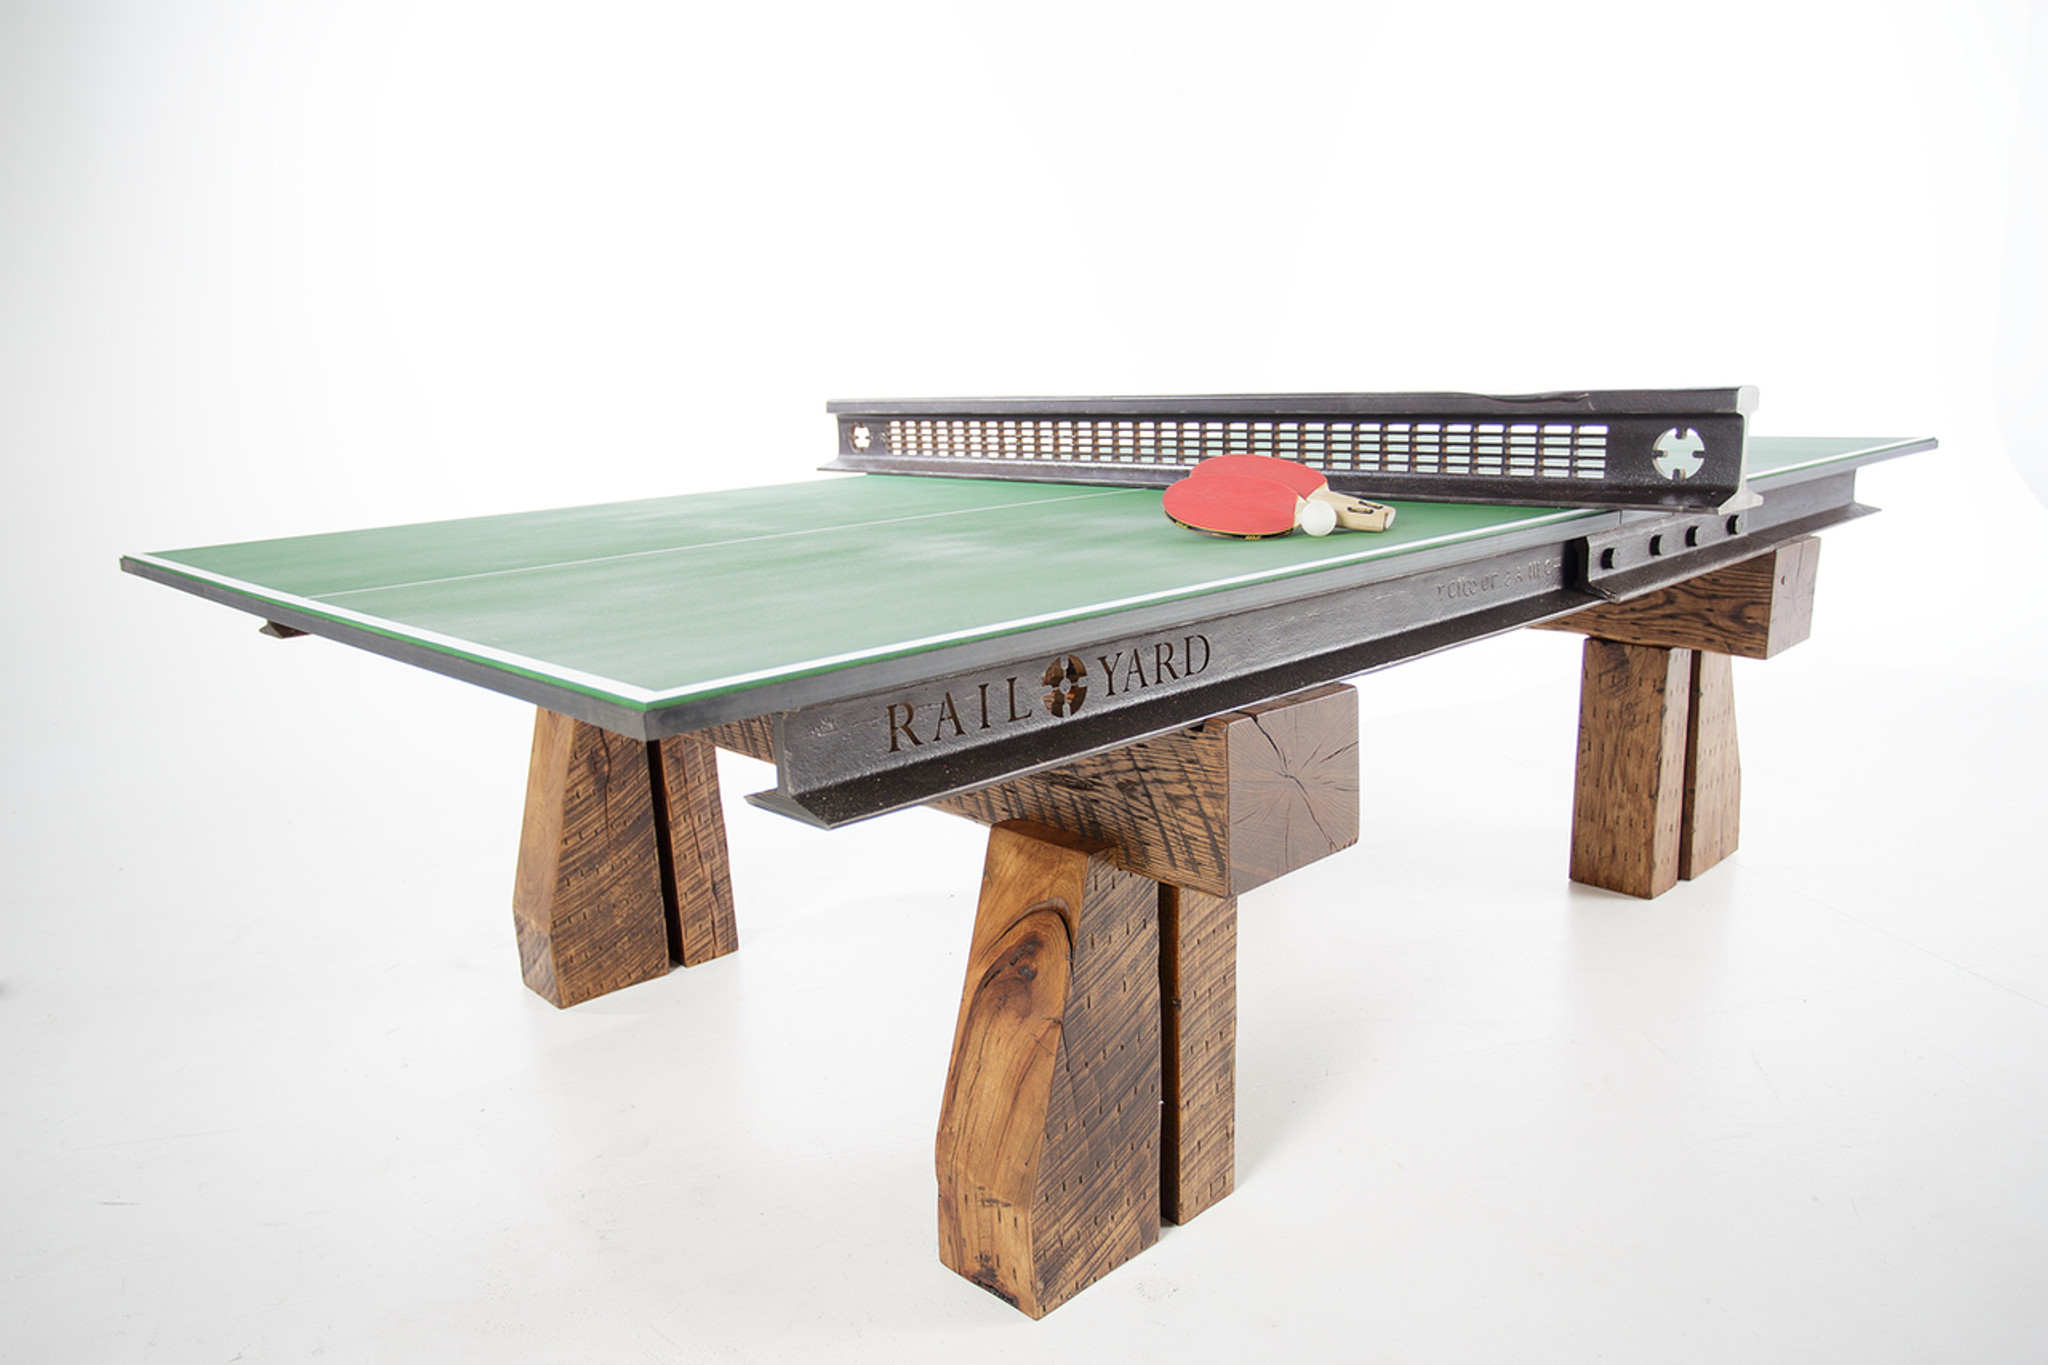 Custom industrial style Ping Pong Table from reclaimed steel railroad rail and hardwood timbers for luxury office or home